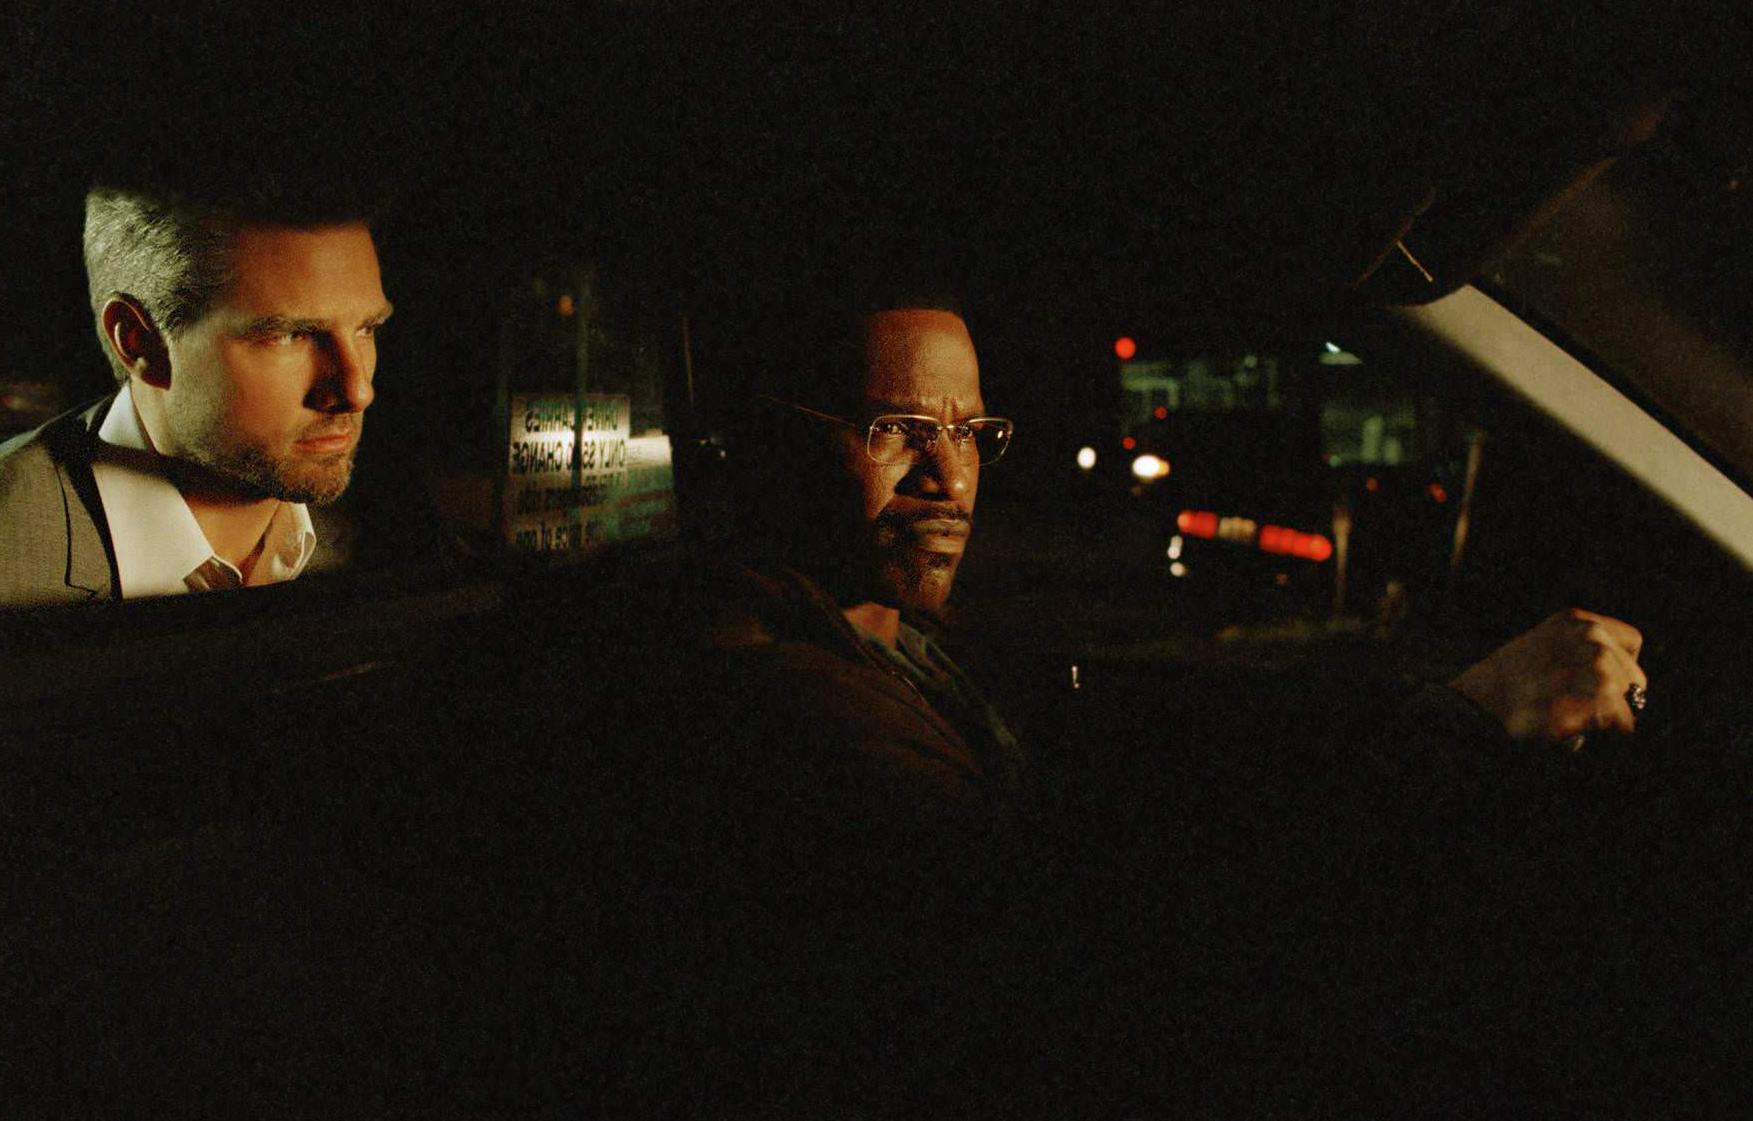 L.A. Breakdown, a Hitman In Crisis: Michael Mann's 'Collateral'